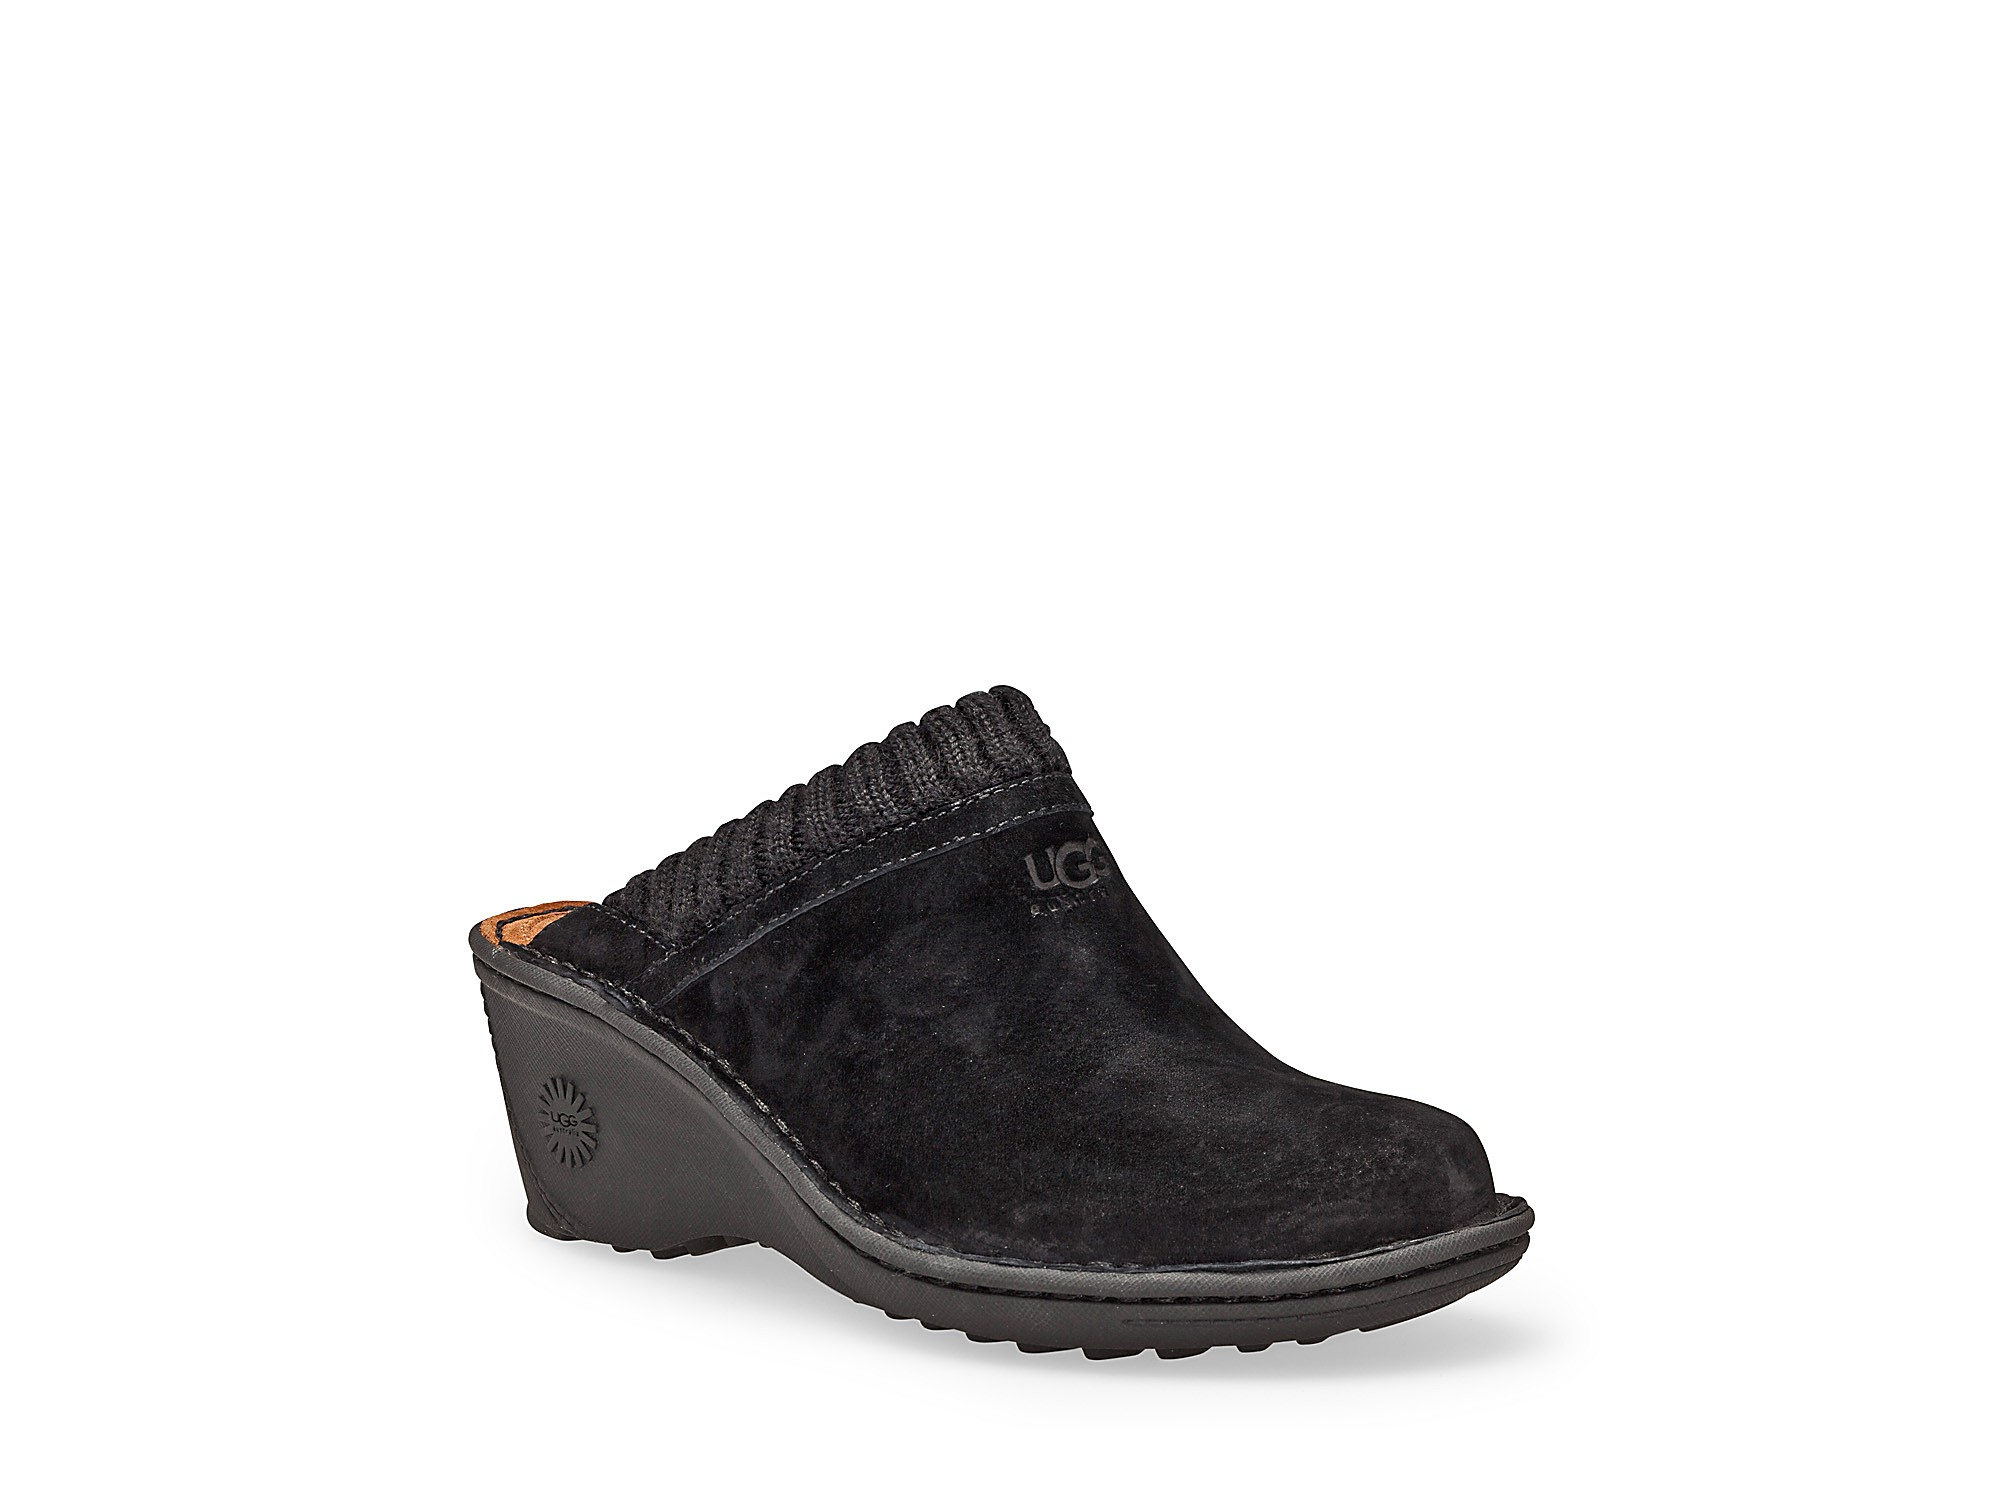 Ugg Gael Clogs With Knit Cuffs In Brown Lyst